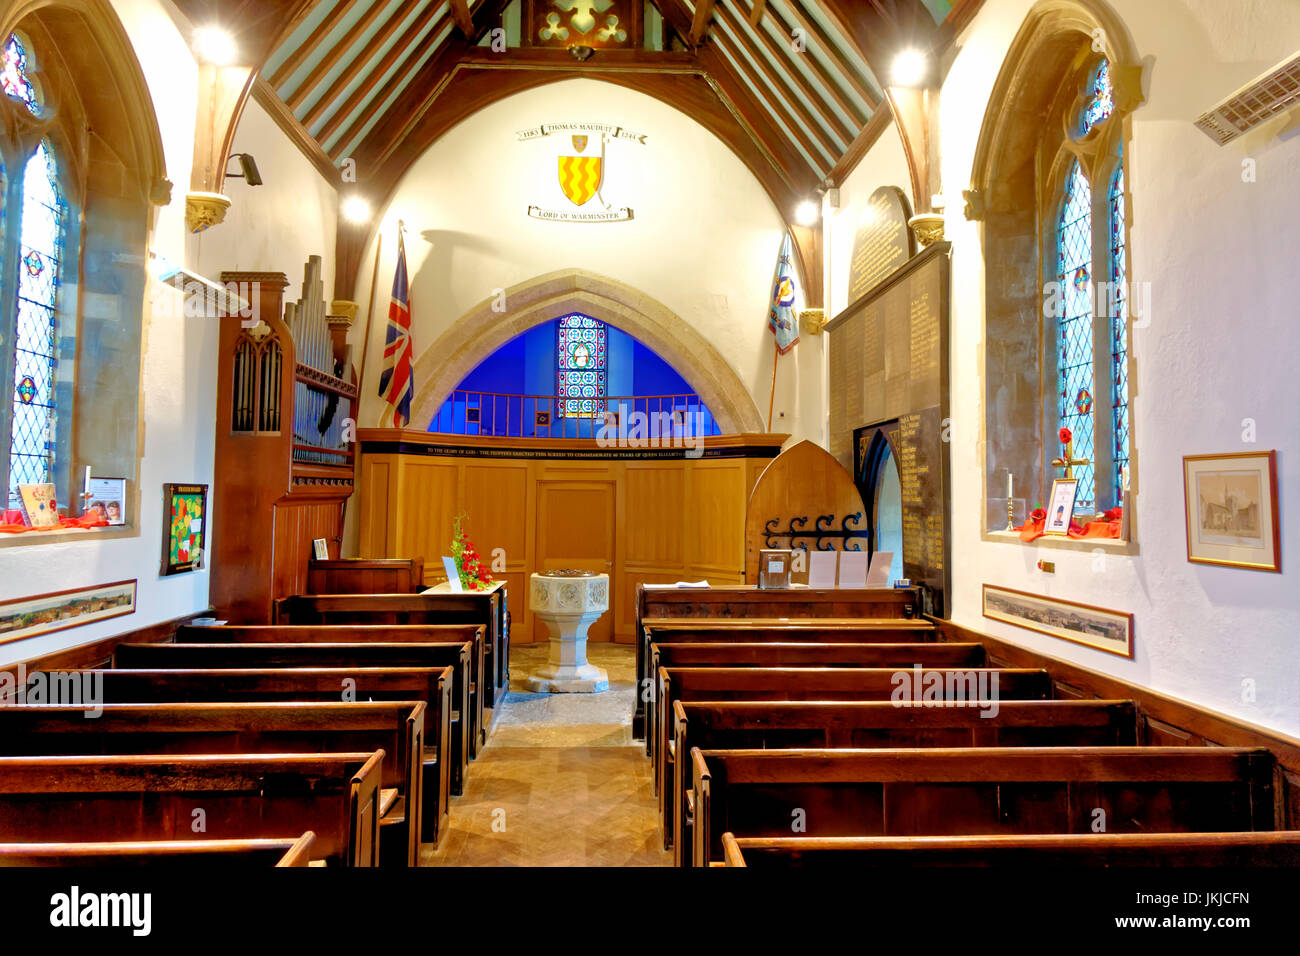 An interior view of St Lawrence Chapel in Warminster, Wiltshire, United Kingdom. Stock Photo